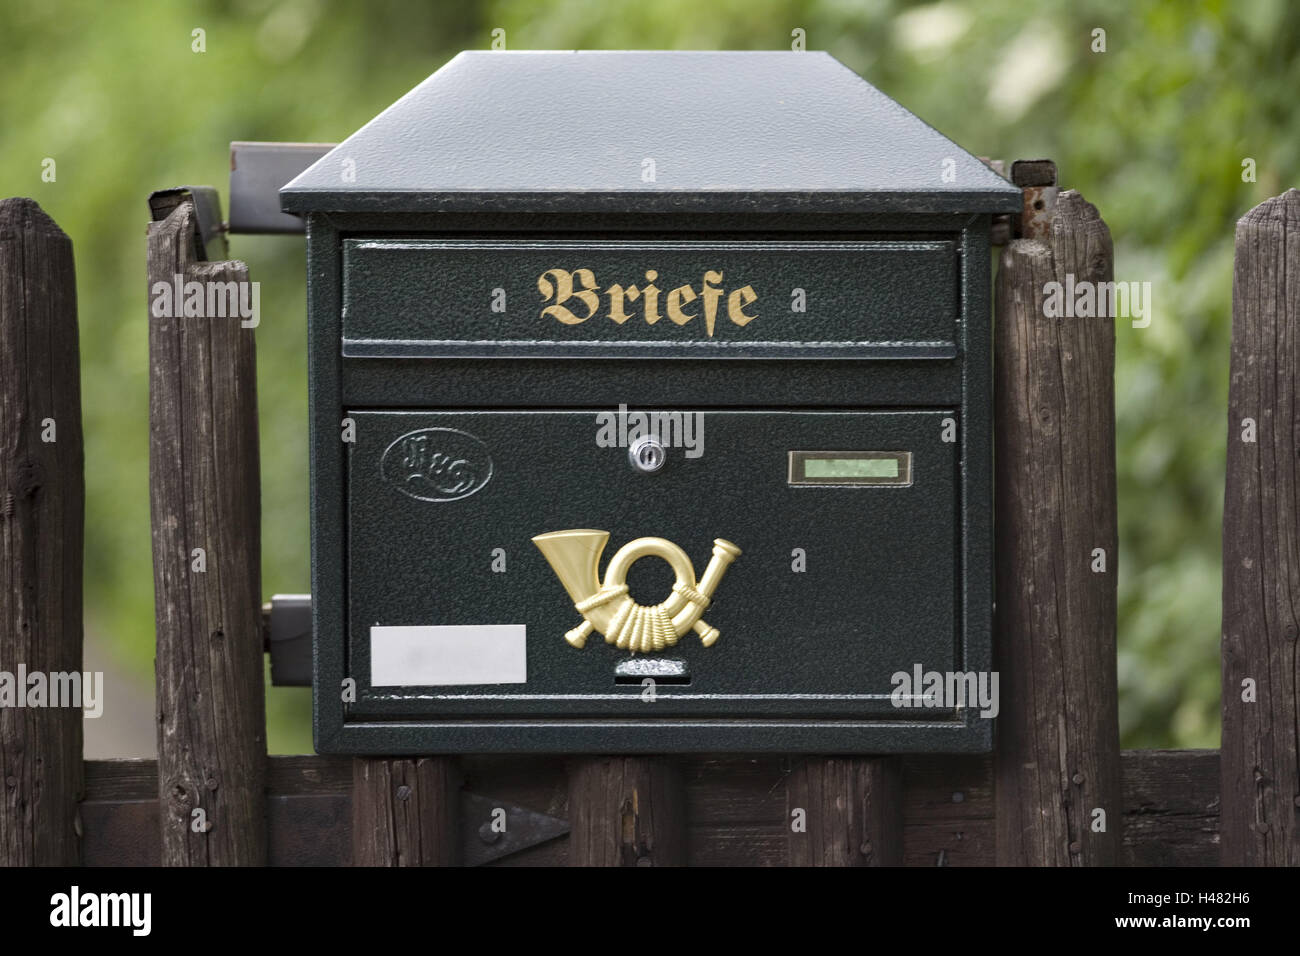 Mailbox, garden fence, fence, post, product photography, communication, letters, letterbox, post horn, - Stock Image